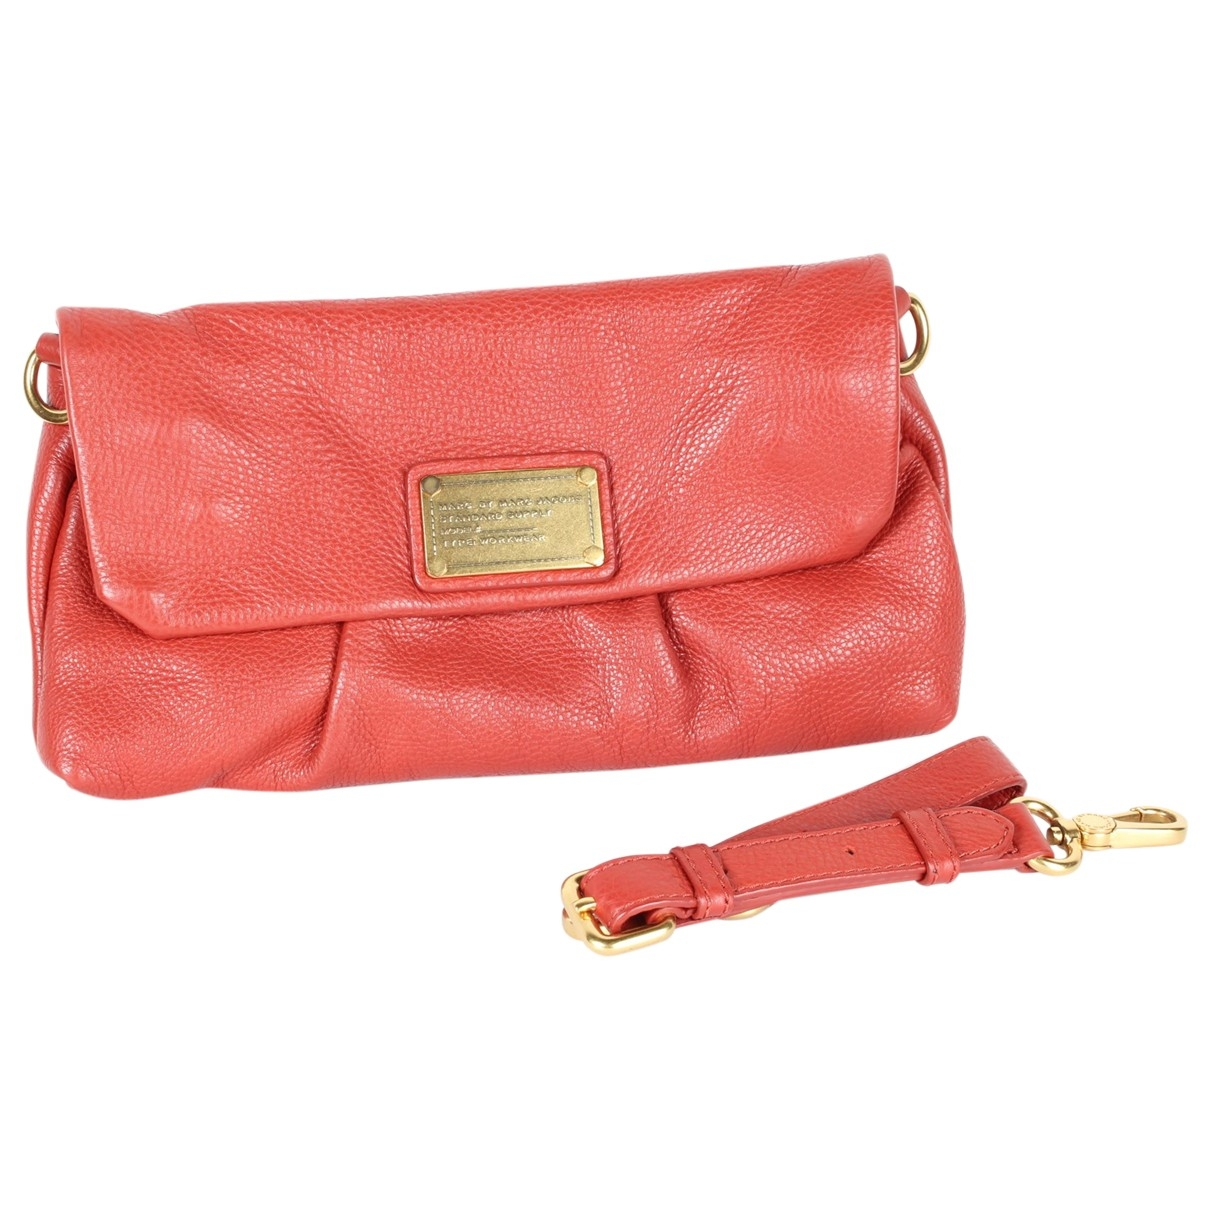 Marc By Marc Jacobs \N Red Leather Clutch bag for Women \N